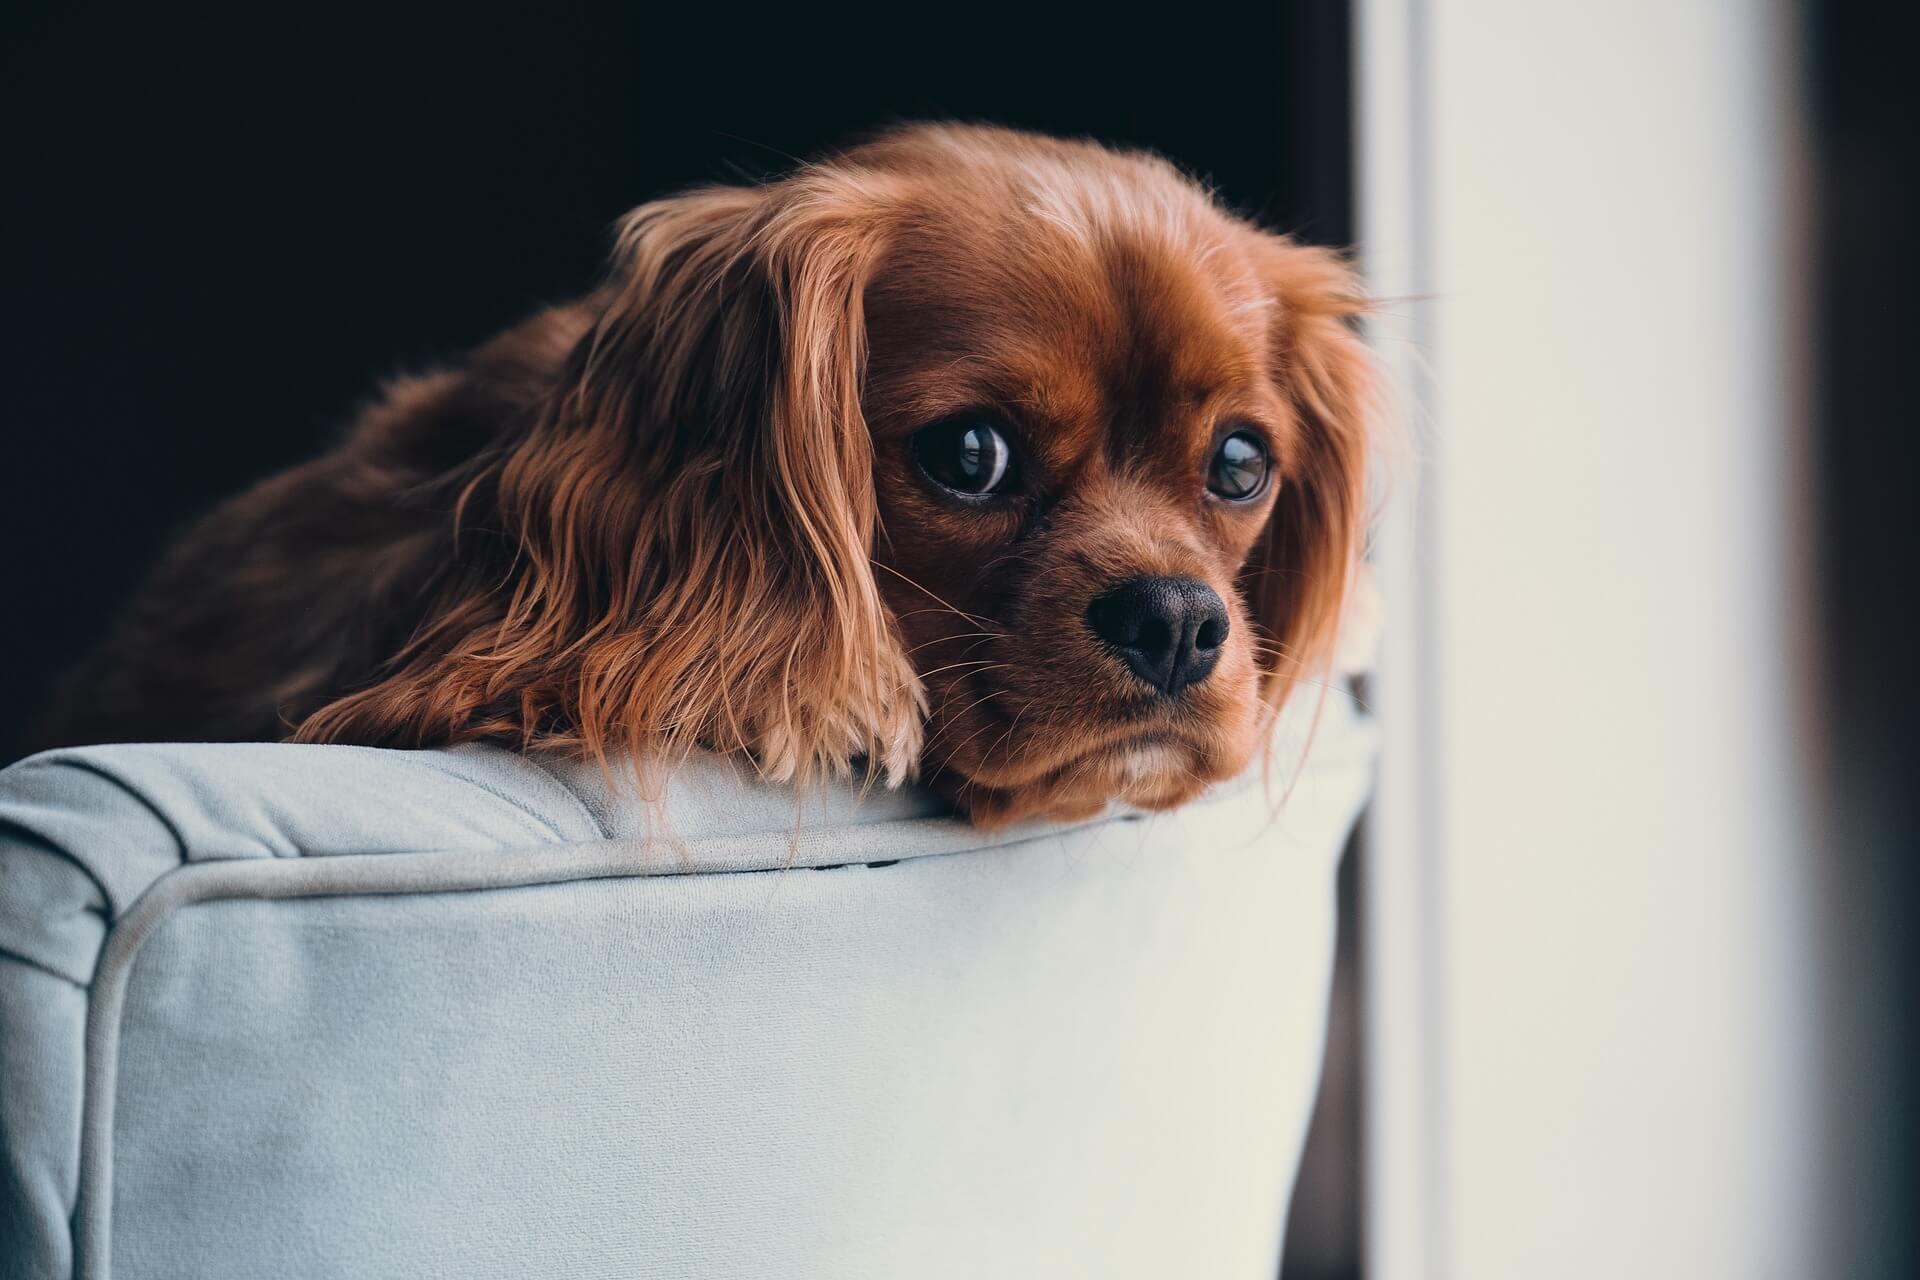 cocker spaniel puppy looking over back of sofa